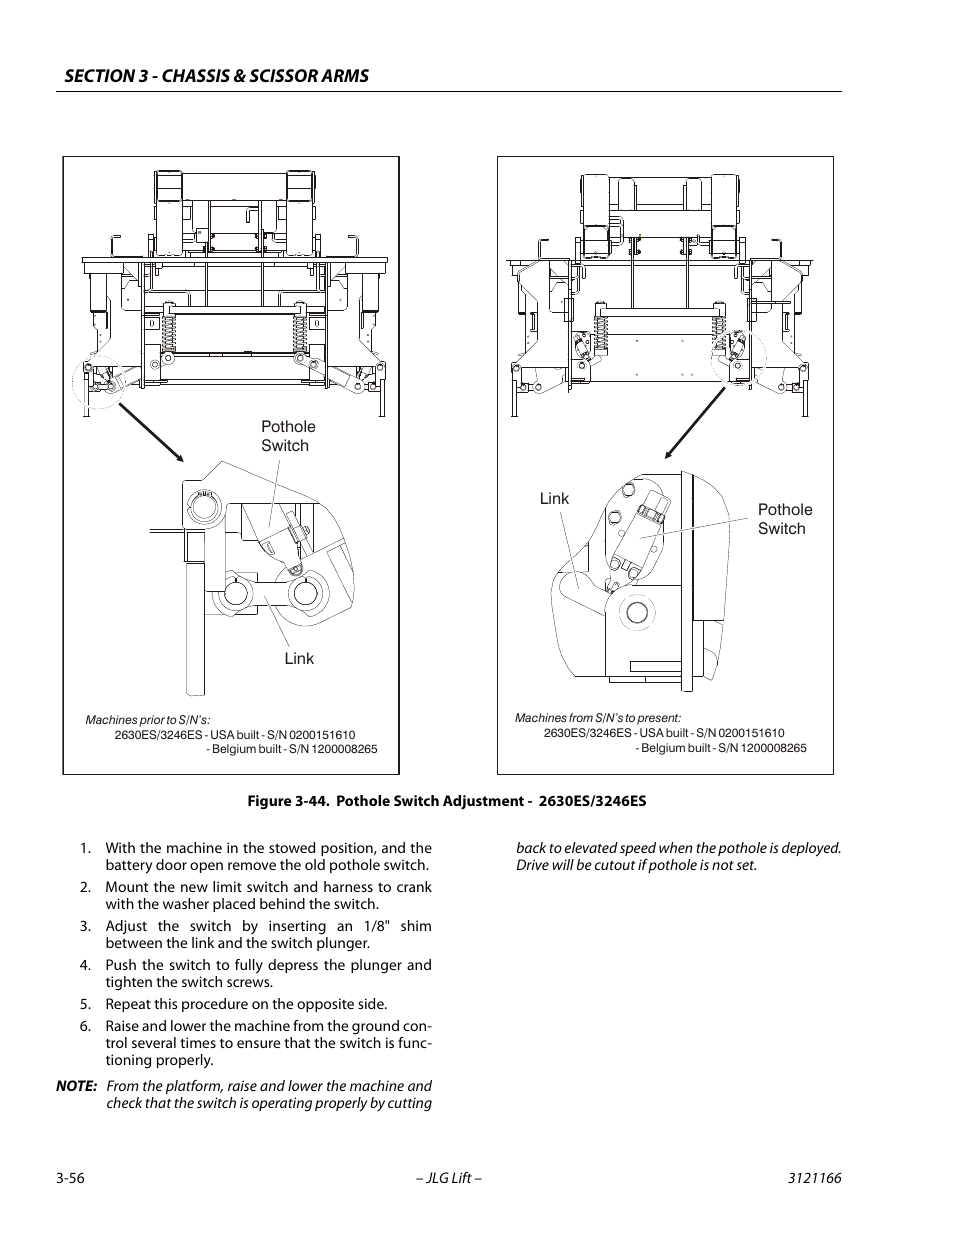 Pothole switch adjustment - 2630es/3246es -56 | JLG 3246ES Service Manual  User Manual